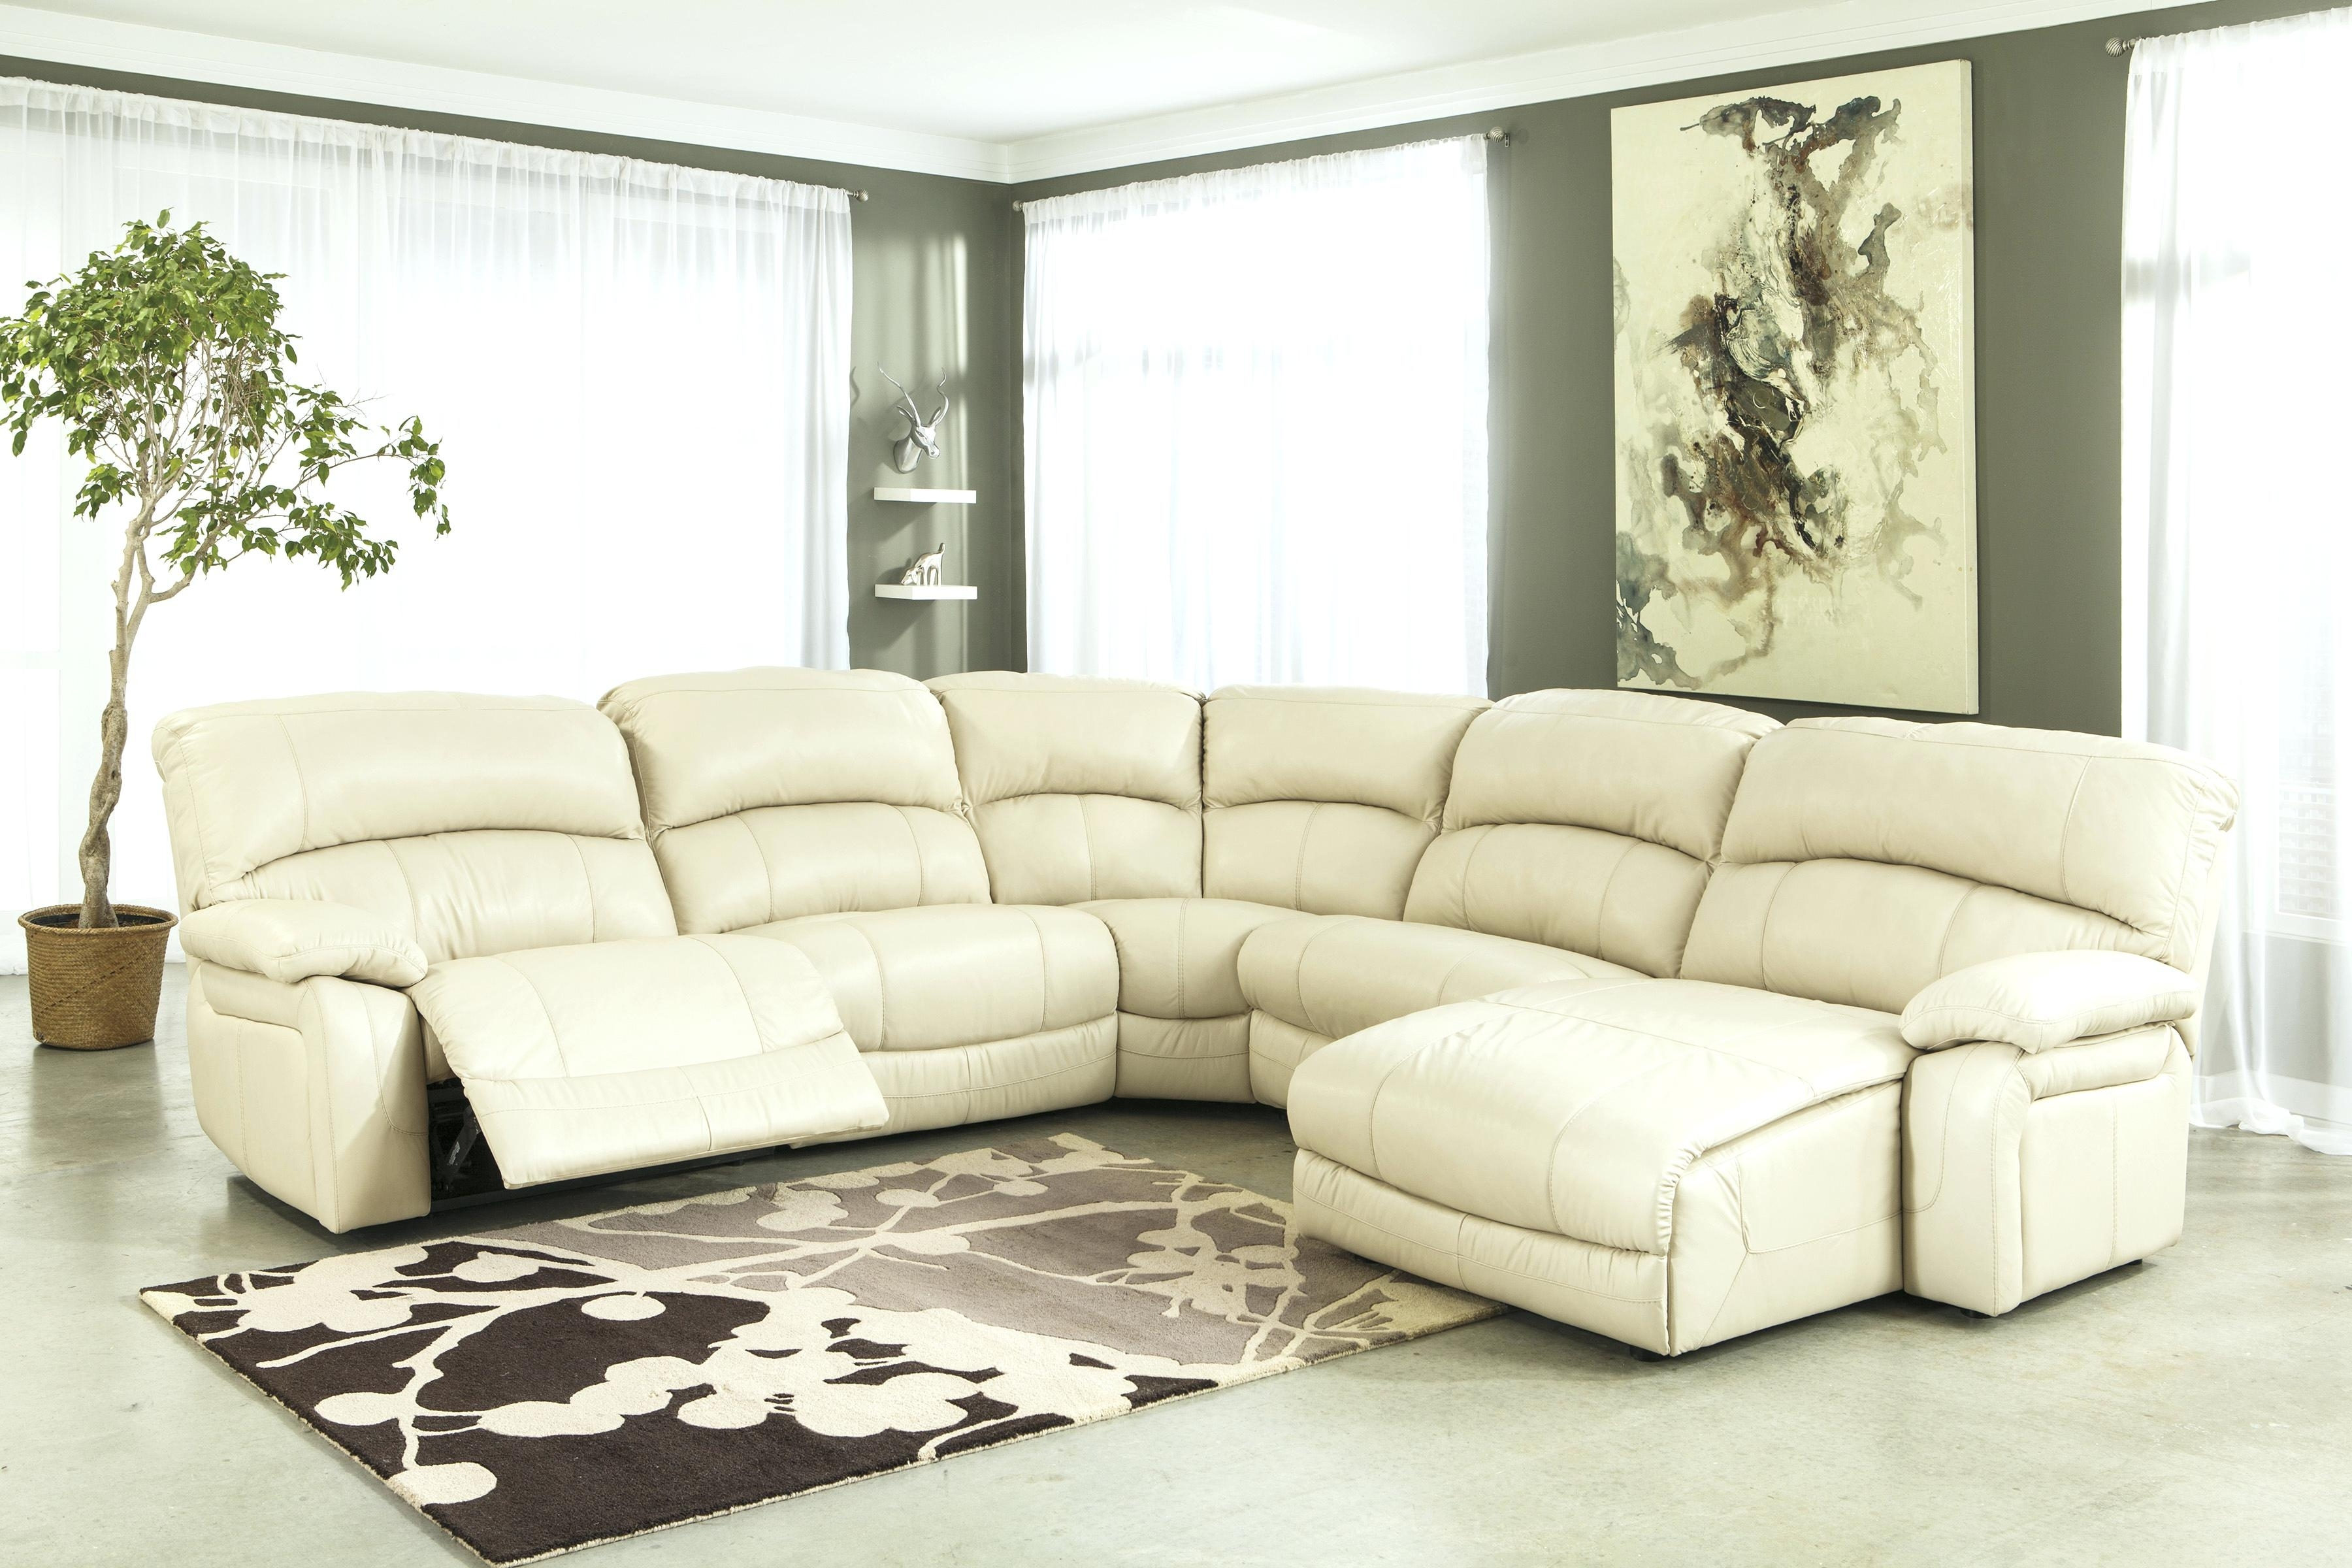 Valdosta Ga Sectional Sofas Throughout Widely Used Sectional Sofa With Recliners Recliner Repair Parts – Bikas (View 13 of 20)